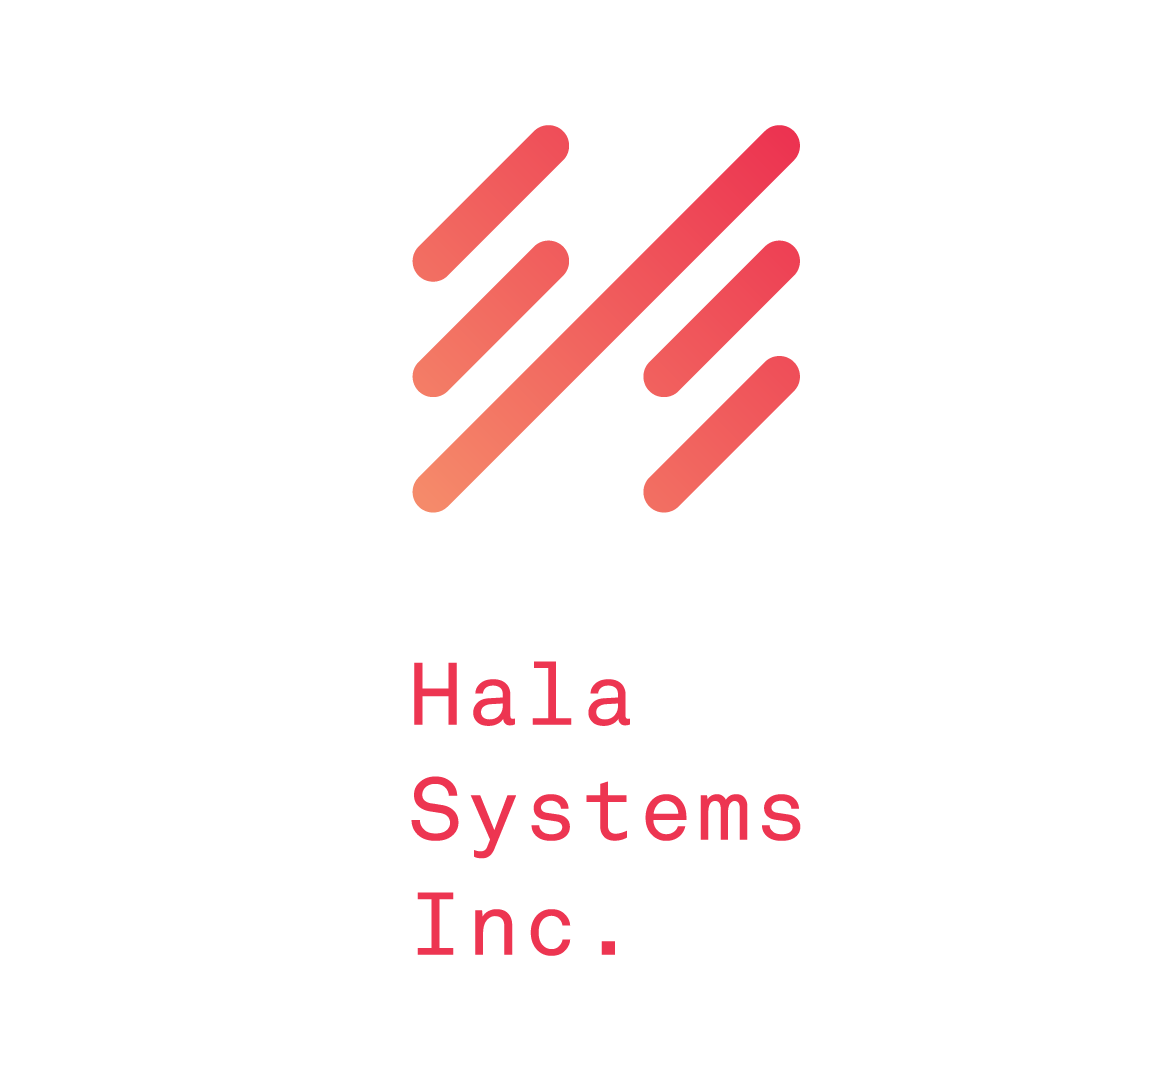 Hala-Systems-Logo-Colors-Final-04-04.png